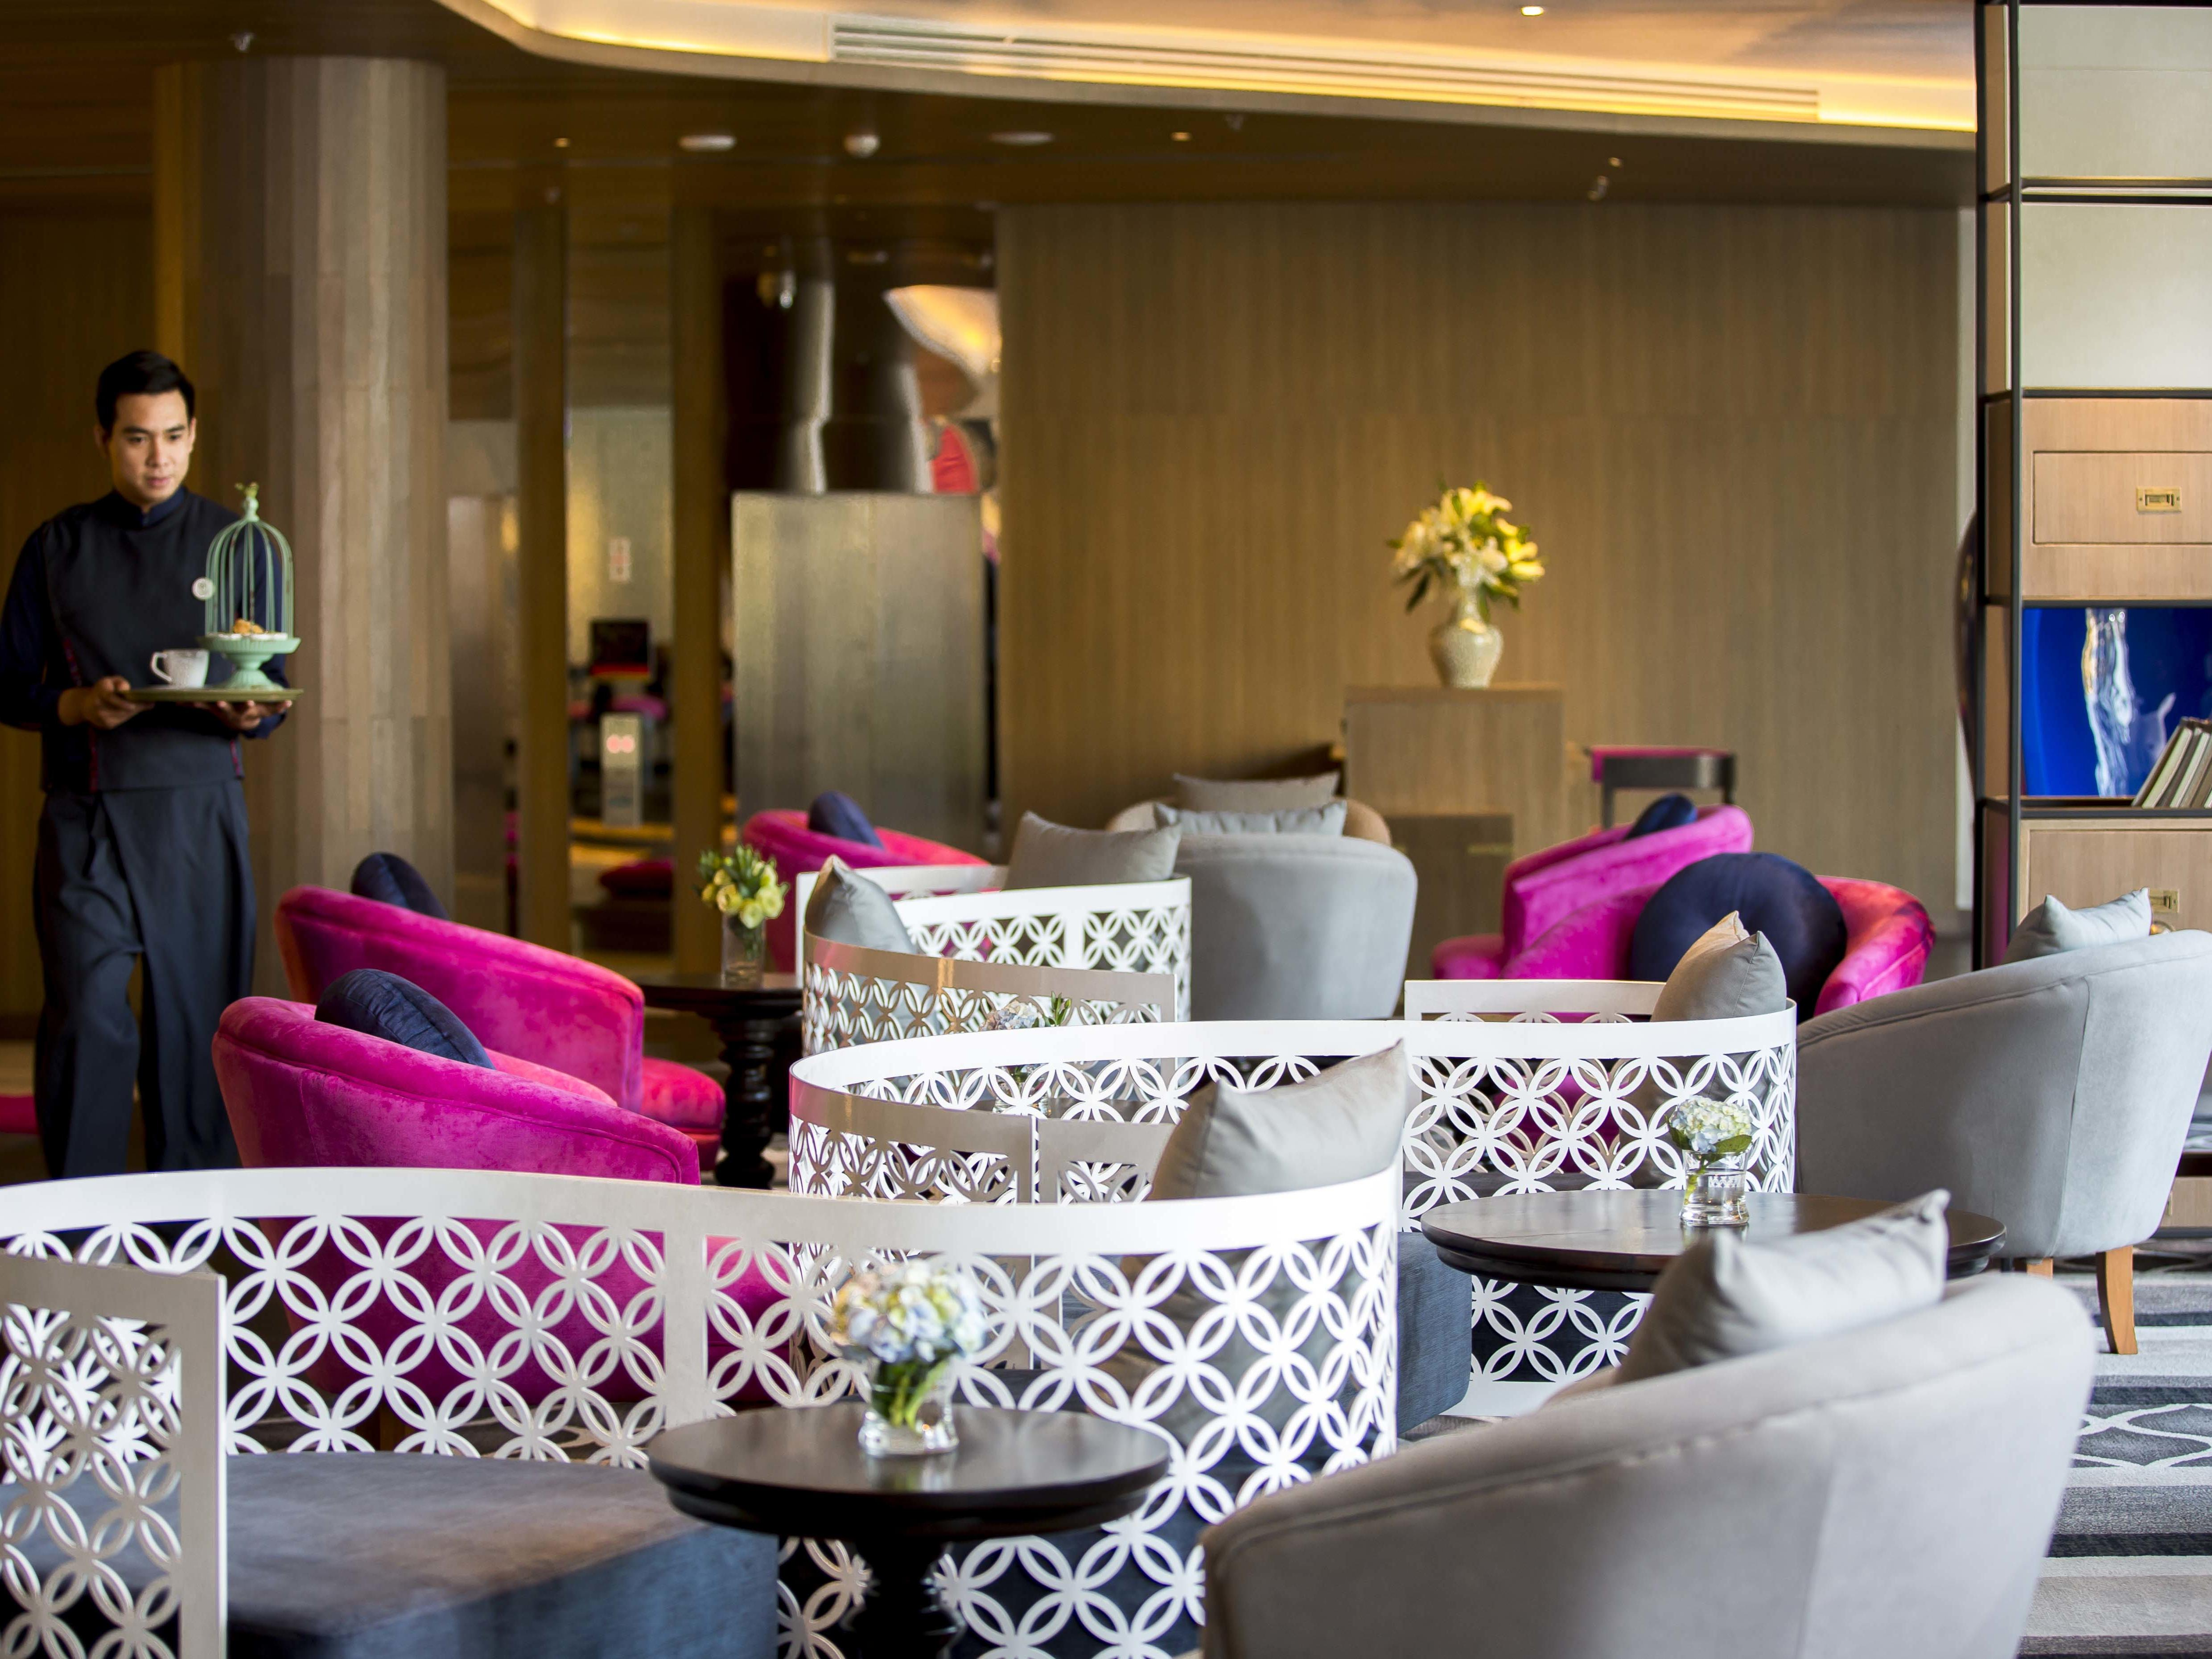 The Lounge at U Hotels and Resorts